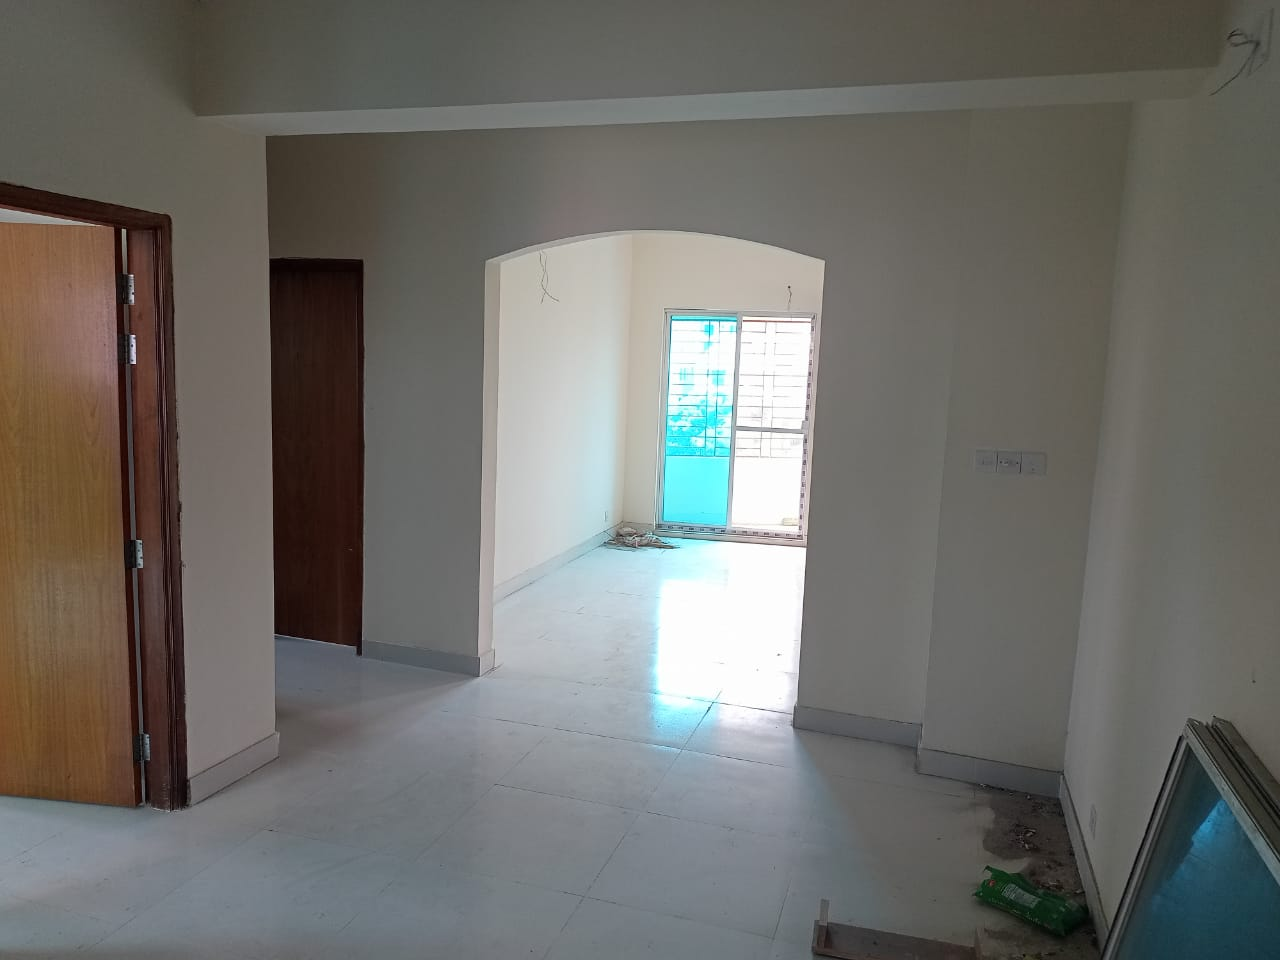 1060-sft-apartment-for-sale-at-jafrabad-dhanmondi-6th-floor-196744